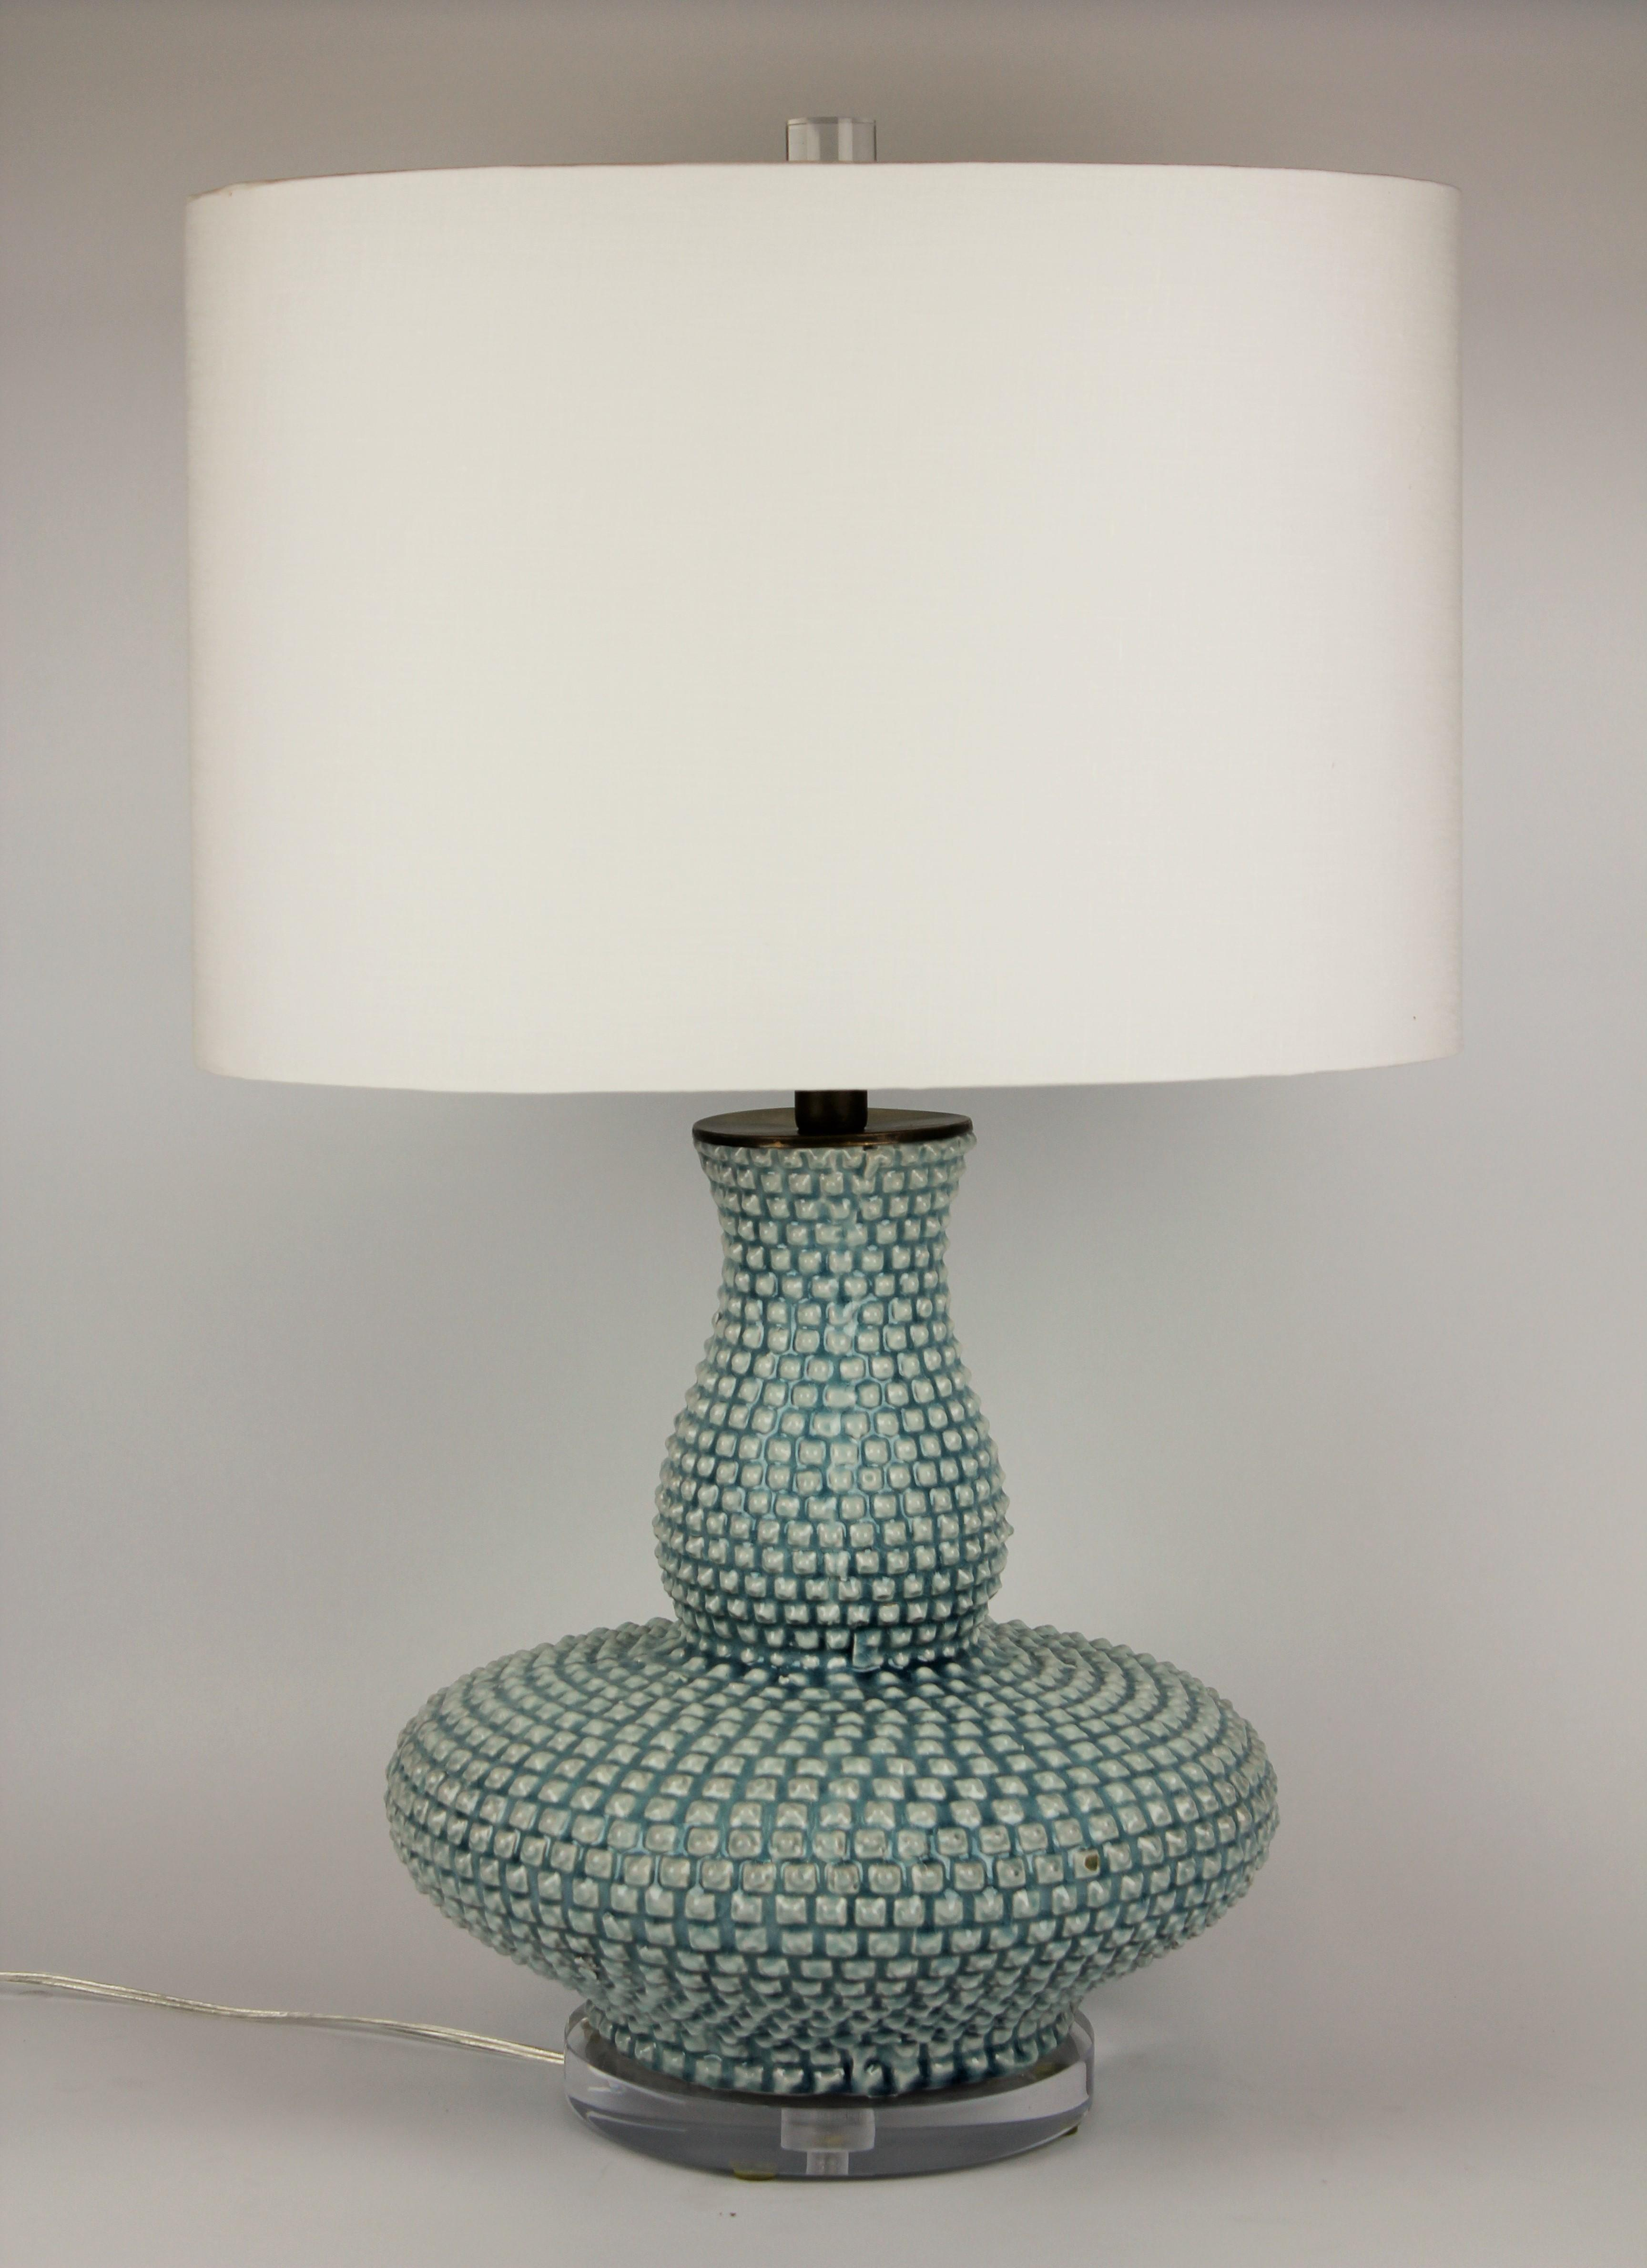 lamp shade specialties coupons near me in los angeles 8coupons. Black Bedroom Furniture Sets. Home Design Ideas